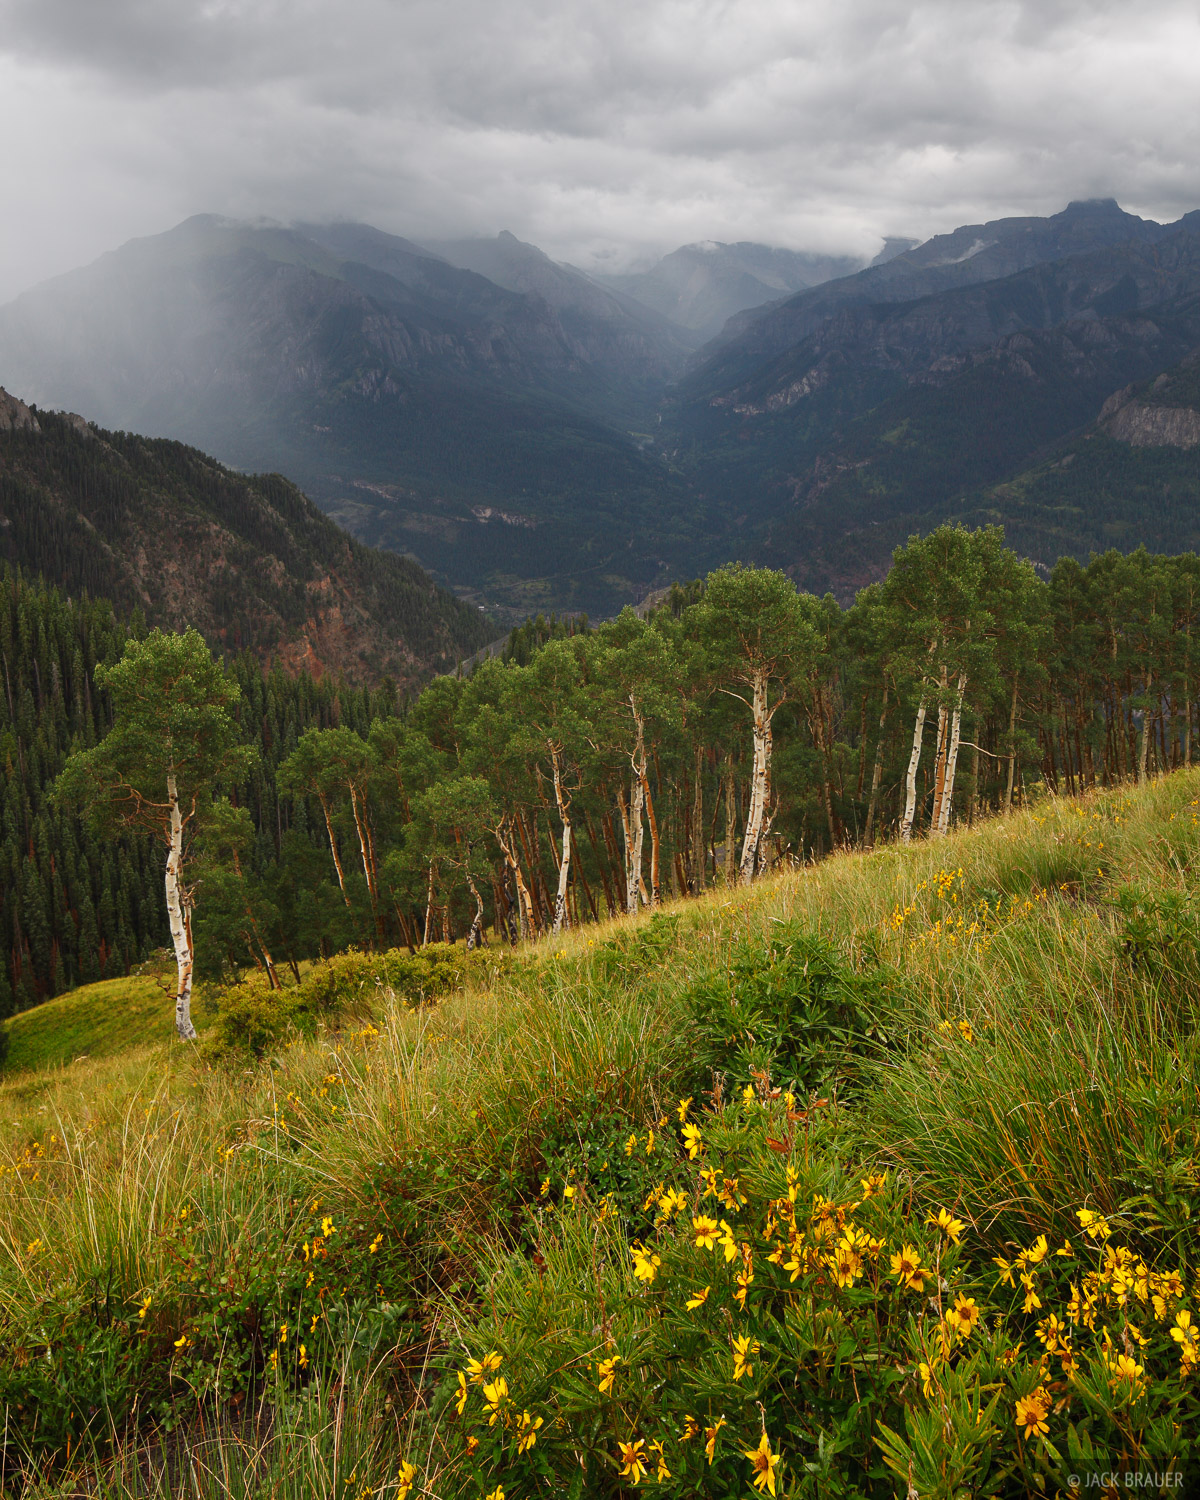 rain, Bridge of Heaven, Ouray, Colorado, San Juan Mountains, photo